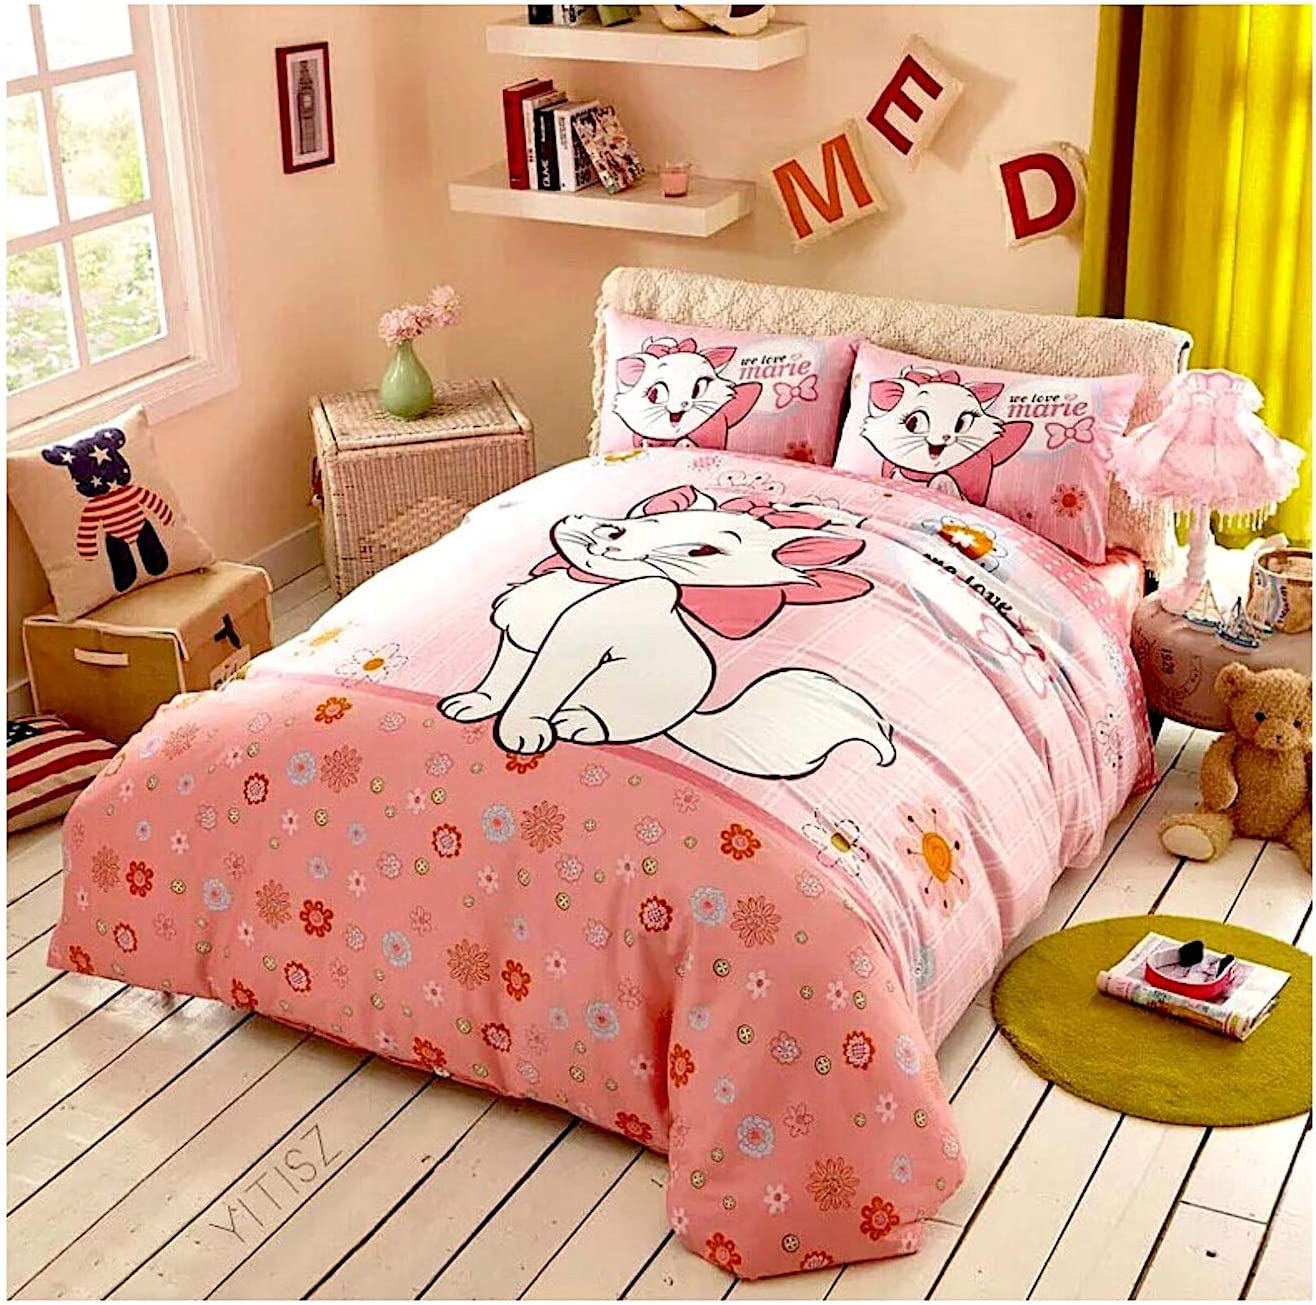 Featuring Disney Marie Cat Kitty Bedding Sheet Set Single Queen Twin Full Size 【Free Express Shipping】 【100% Cotton】 Cartoon Girly Pink 3 and 4 Pieces The Aristocats Bed Sheets (Queen Size)